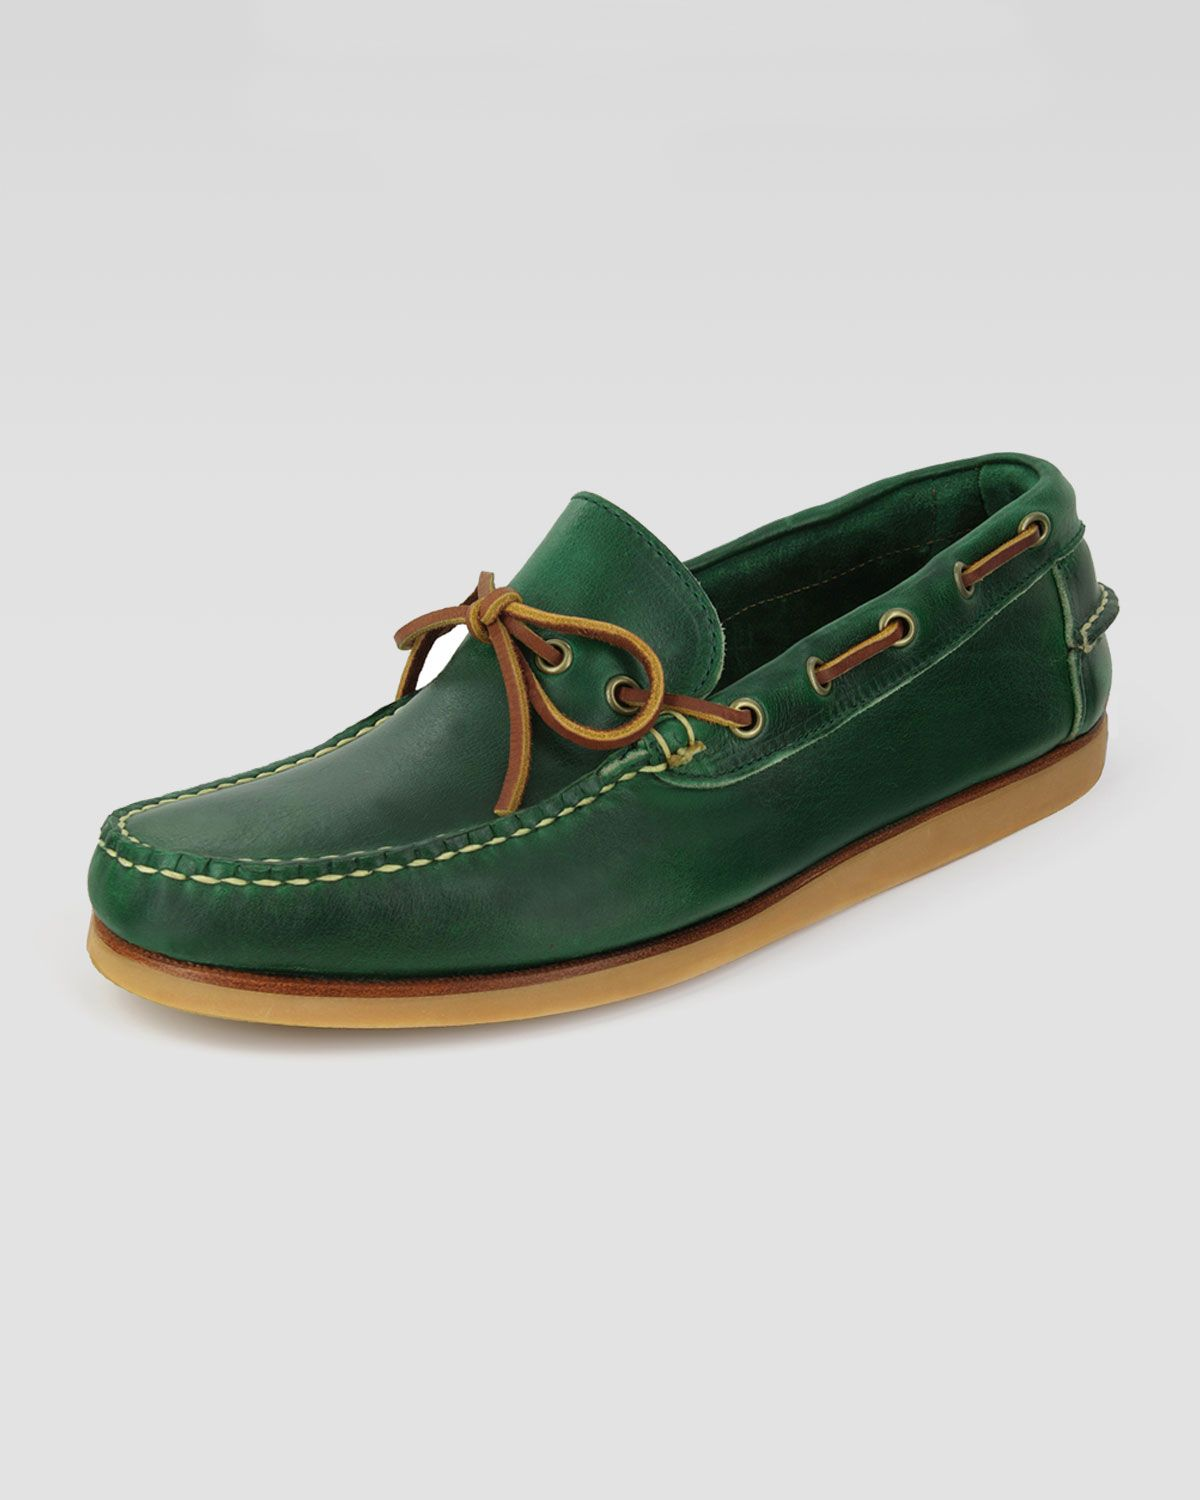 3423037b13 Discover ideas about Eastland Shoes. Eastland Made in Maine Yarmouth Boat  ...